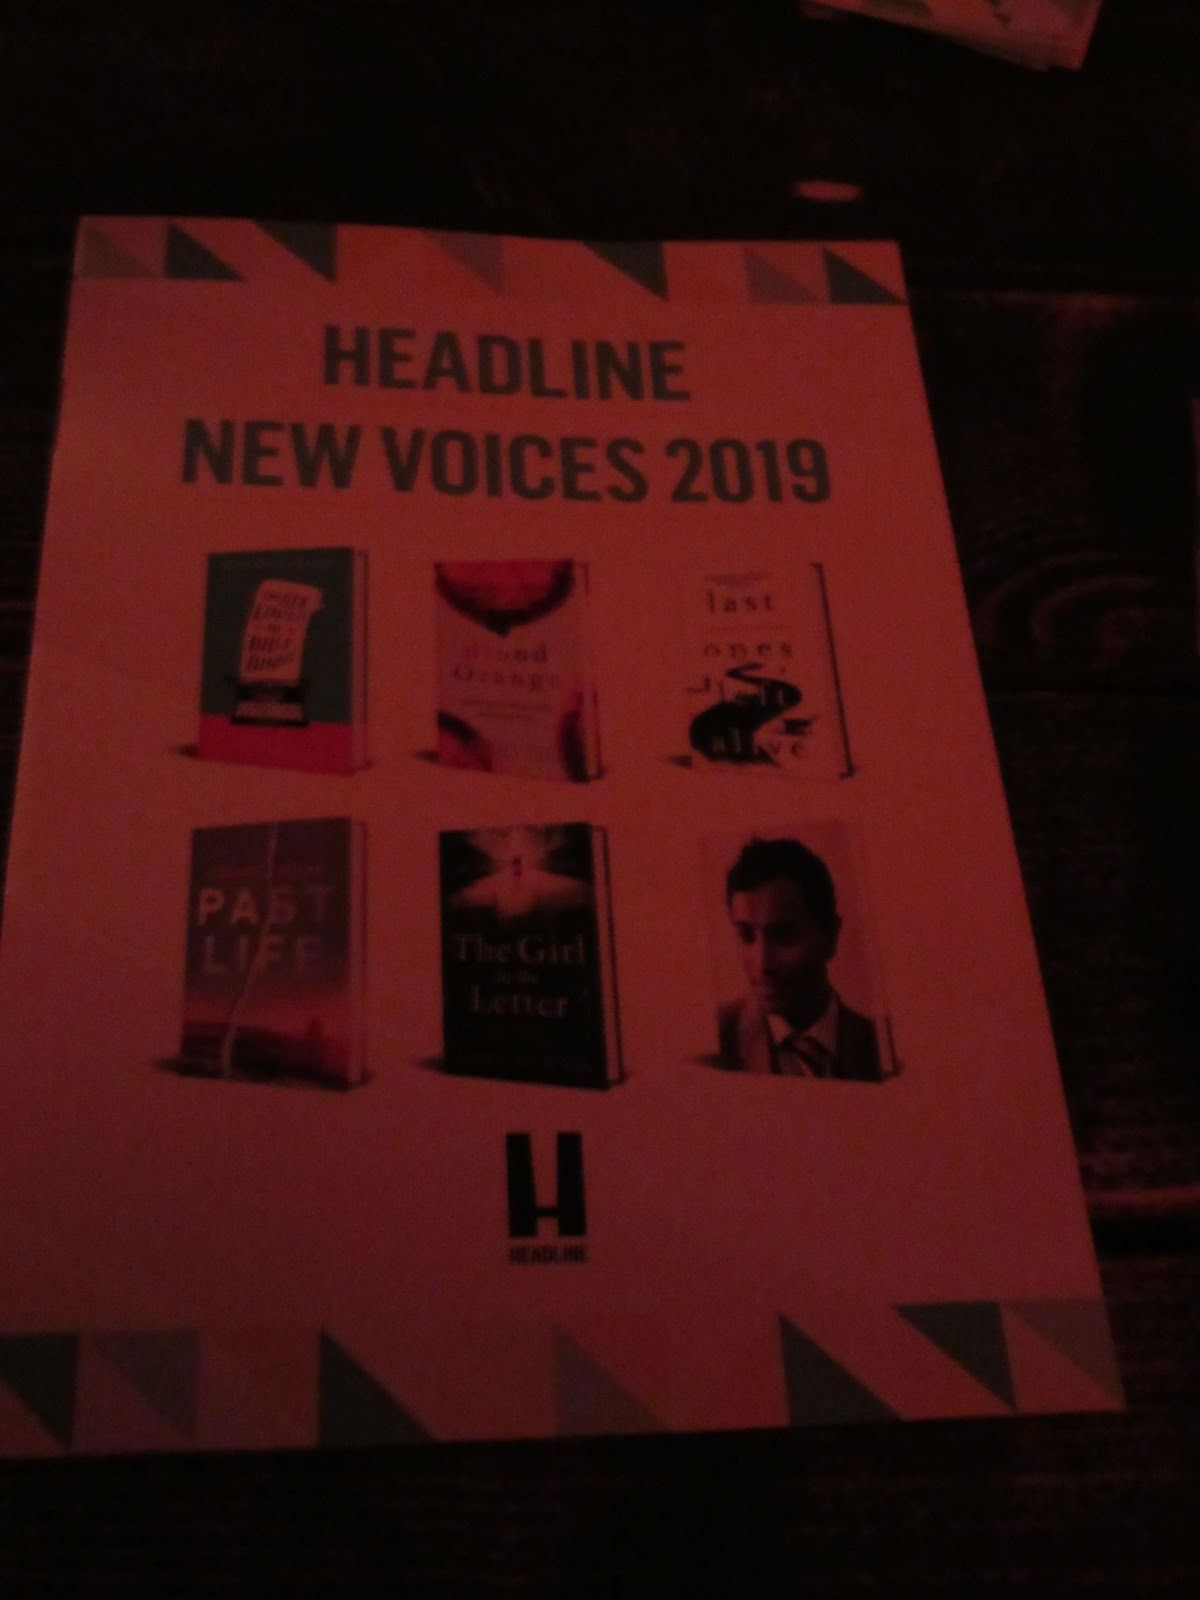 So many books, so little time: New Voices 2019 Headline Event